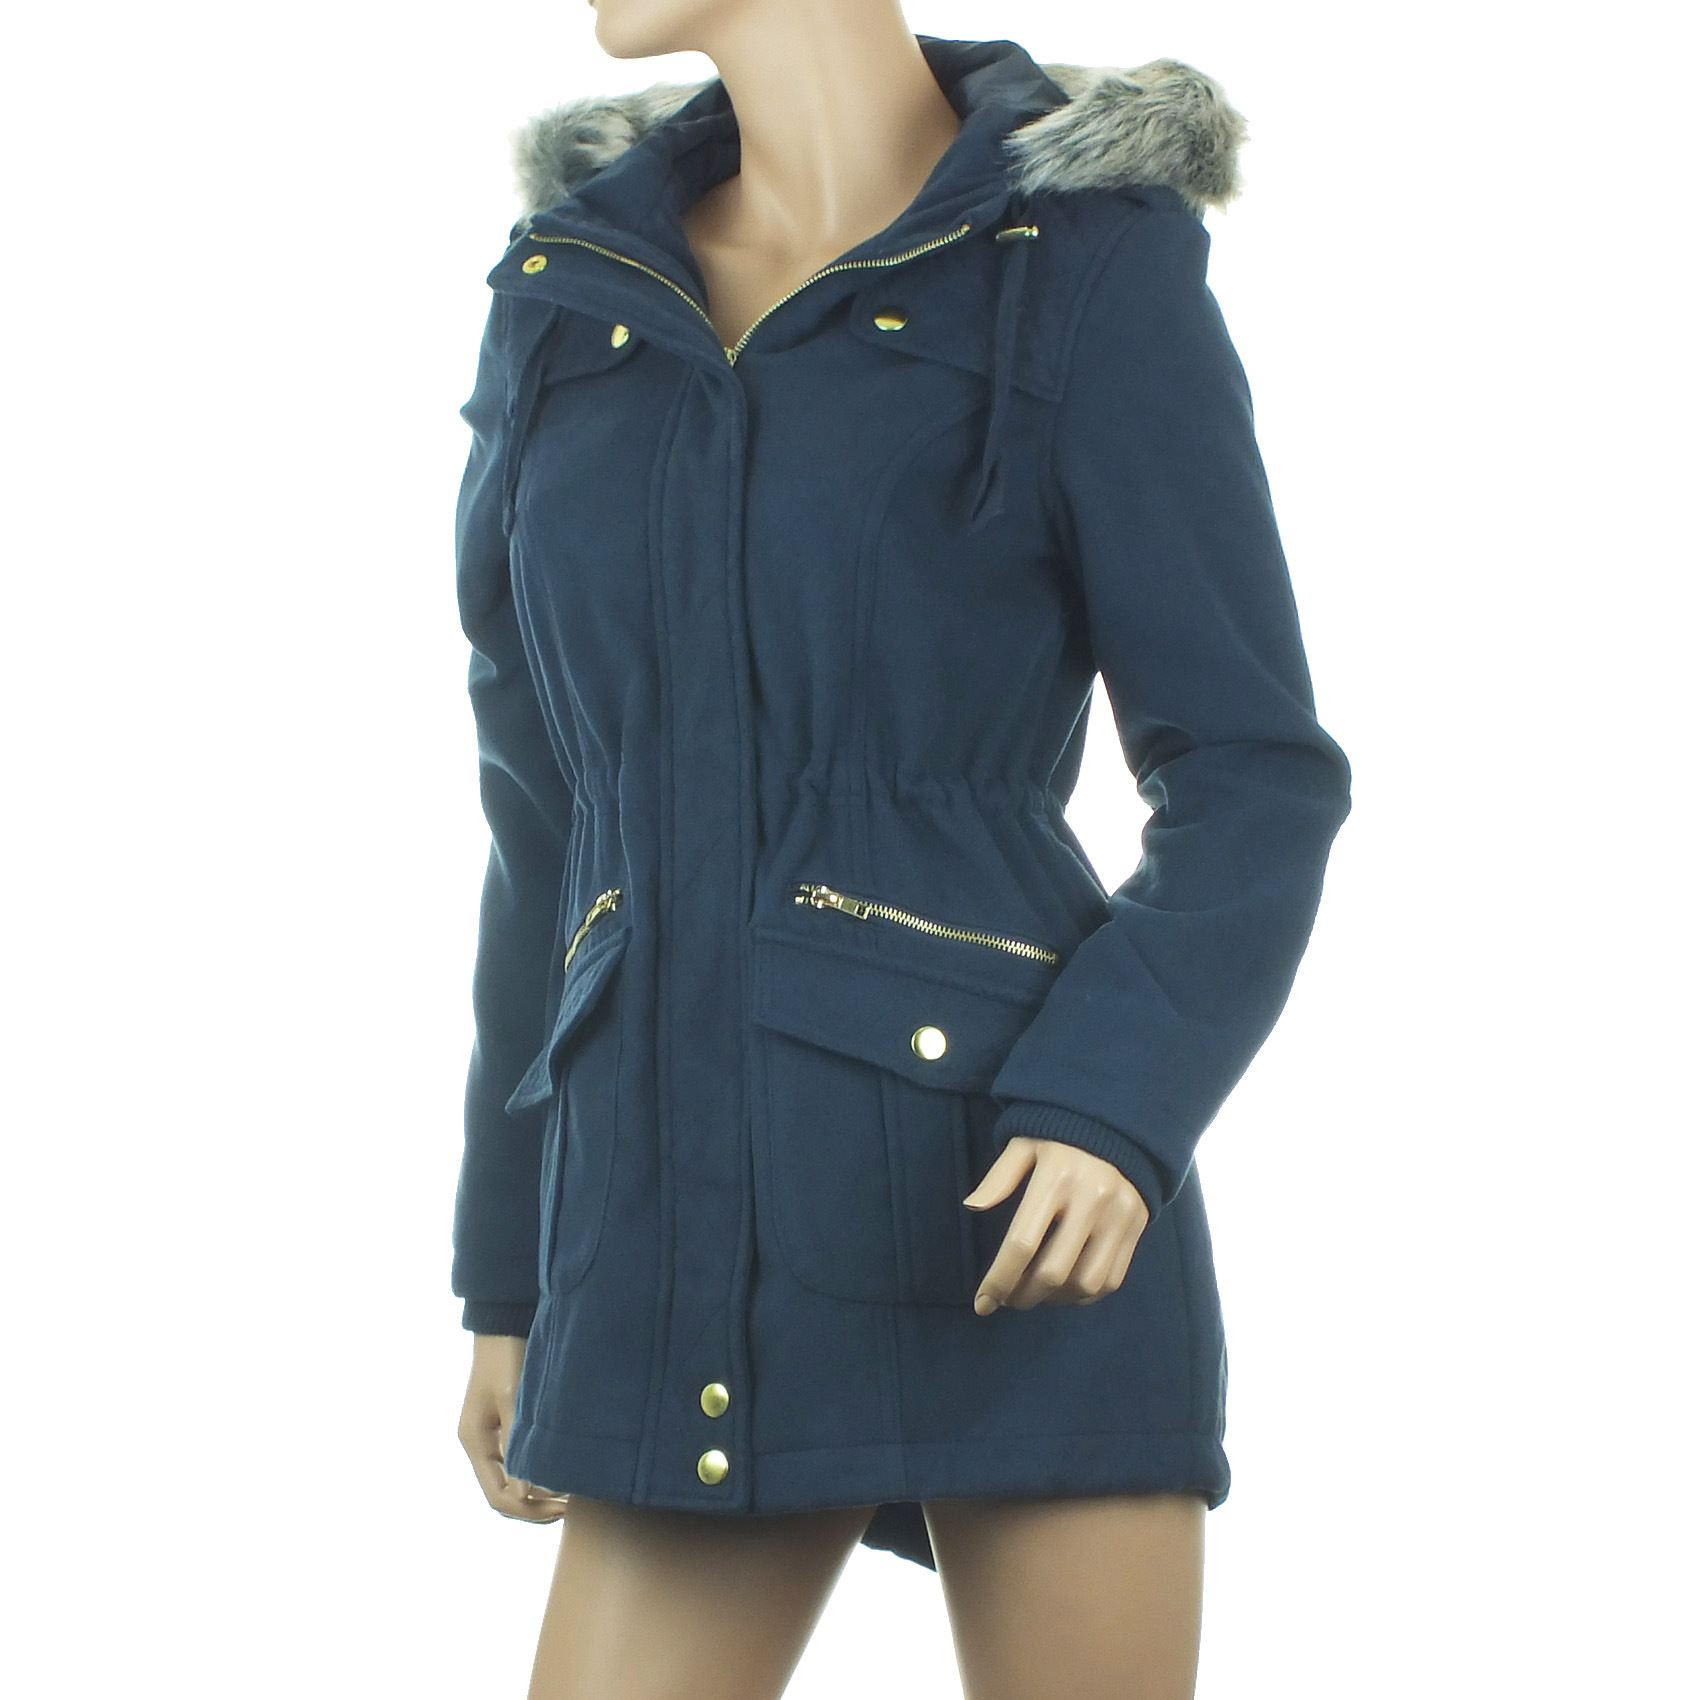 Shop the latest styles of Womens Parka Coats at Macys. Check out our designer collection of chic coats including peacoats, trench coats, puffer coats and more! Macy's Presents: The Edit- A curated mix of fashion and inspiration Check It Out. Free Shipping with $75 purchase + .